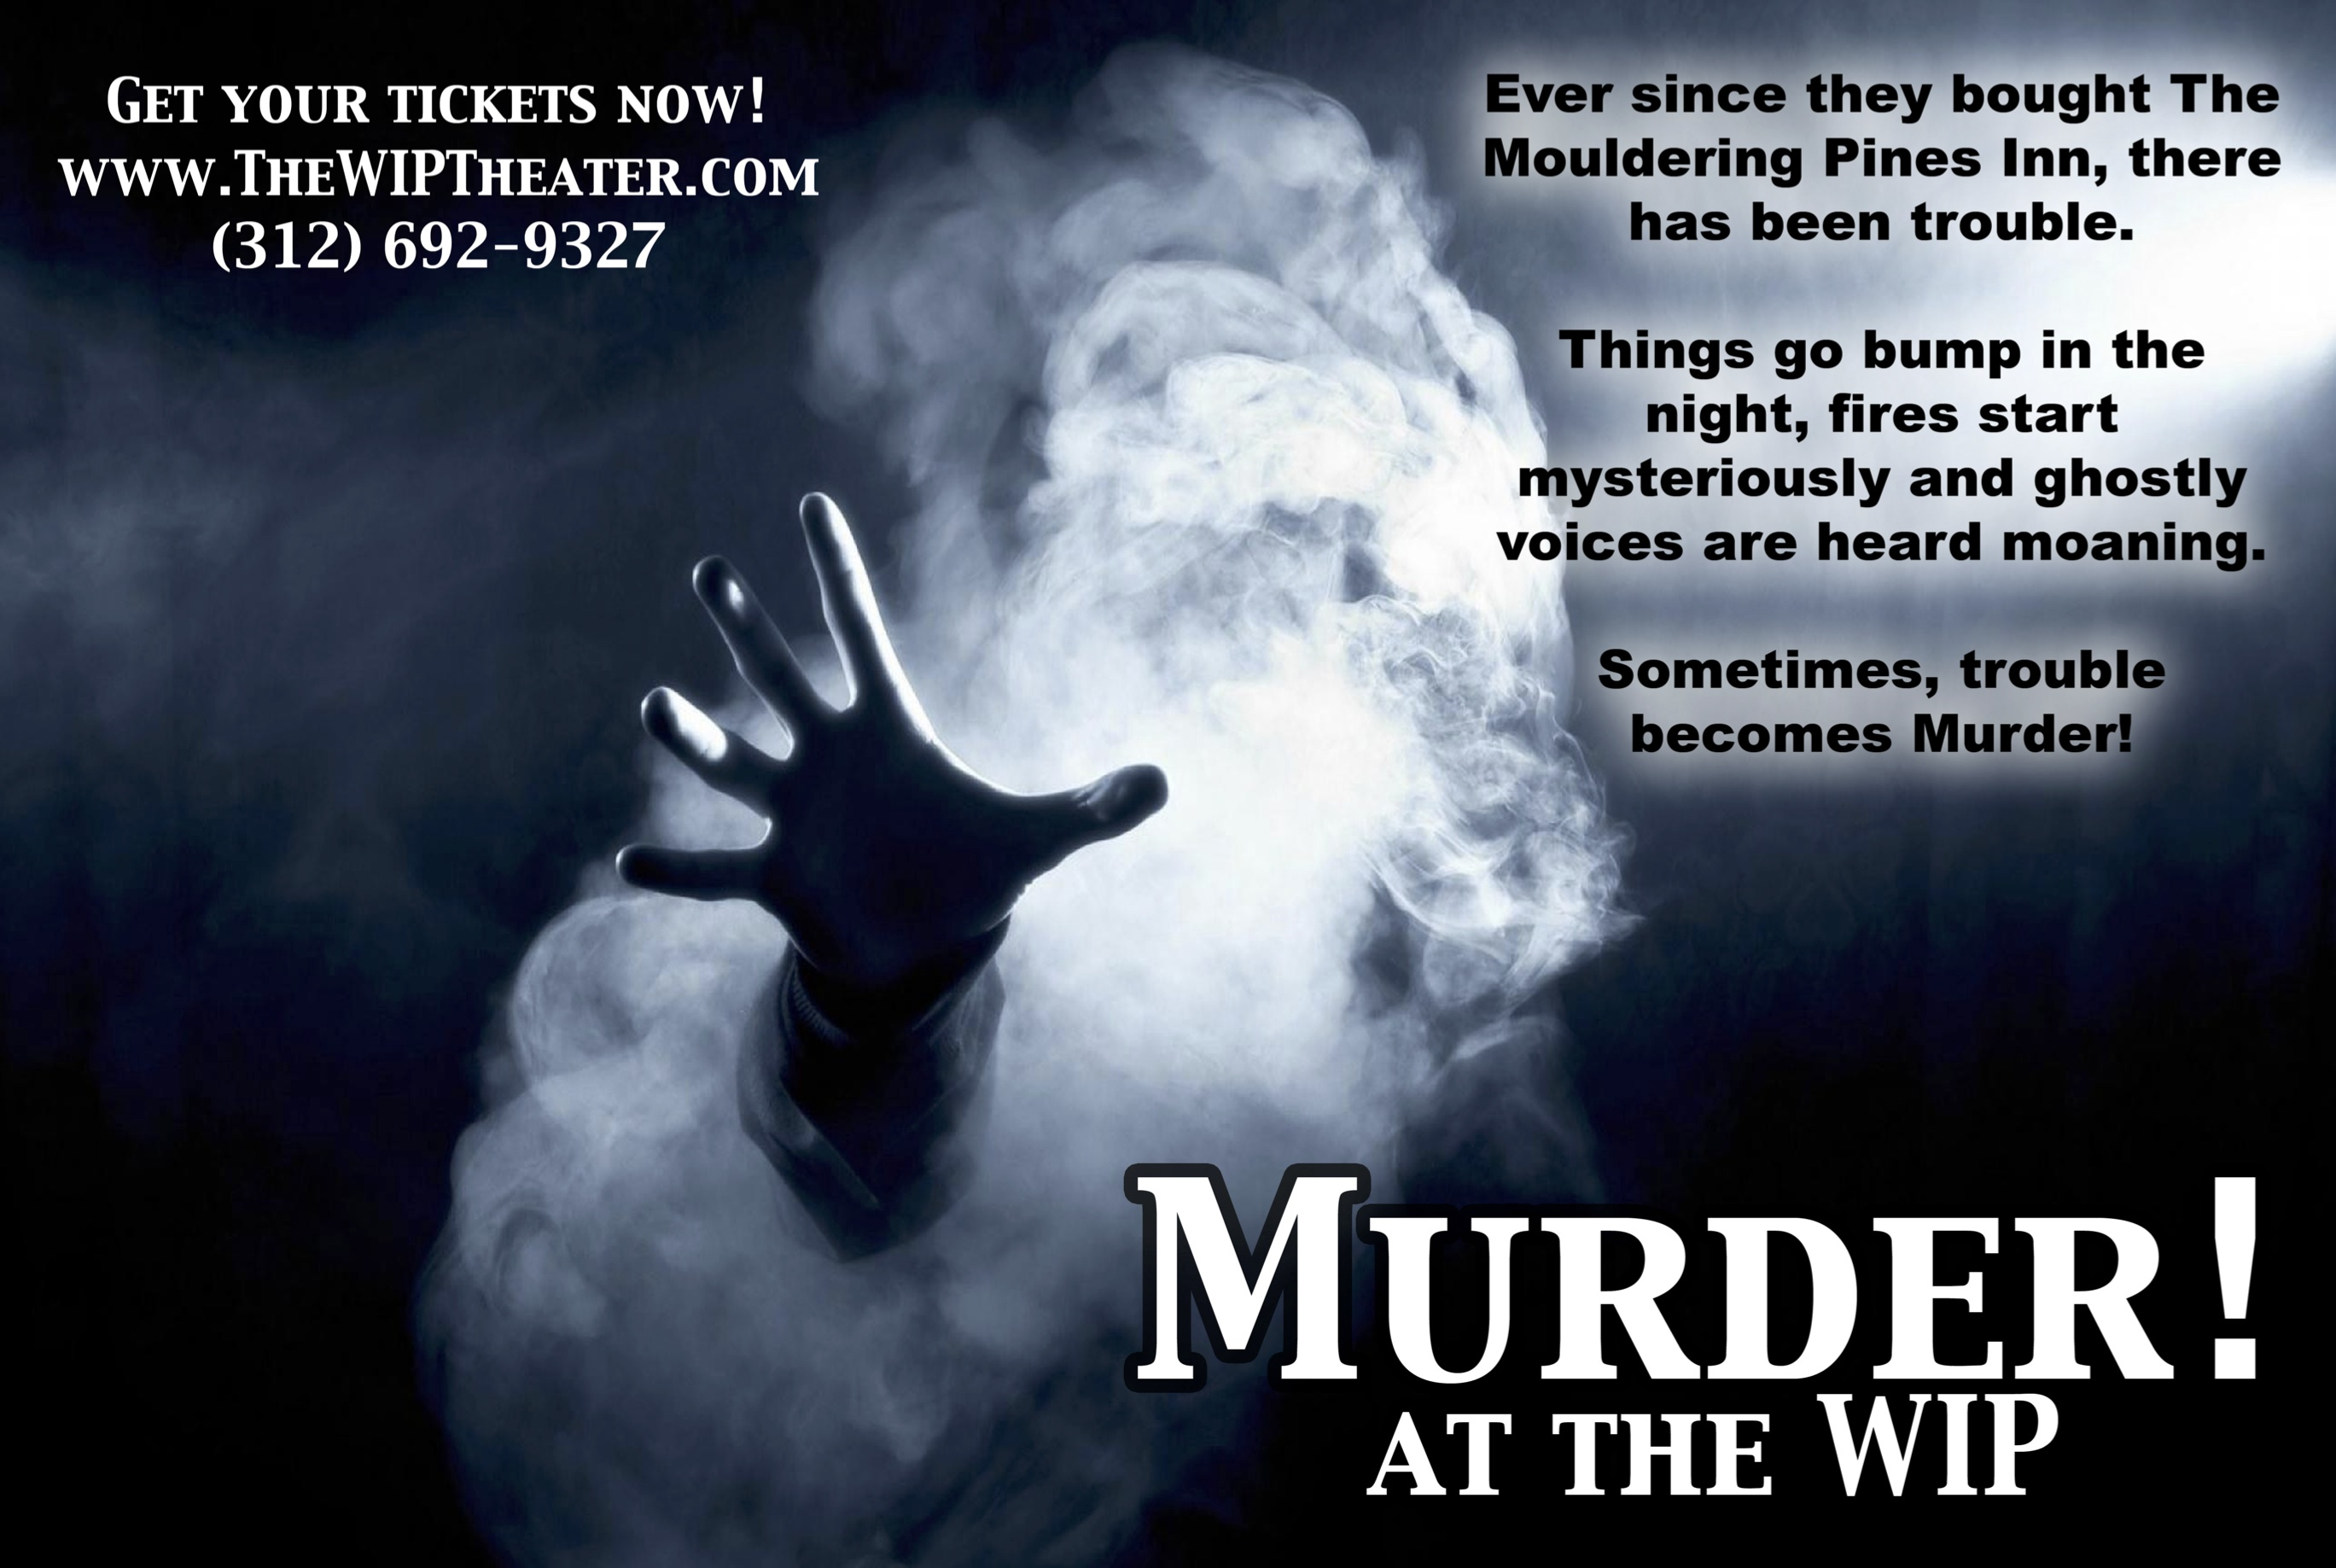 Murder! At the WIP